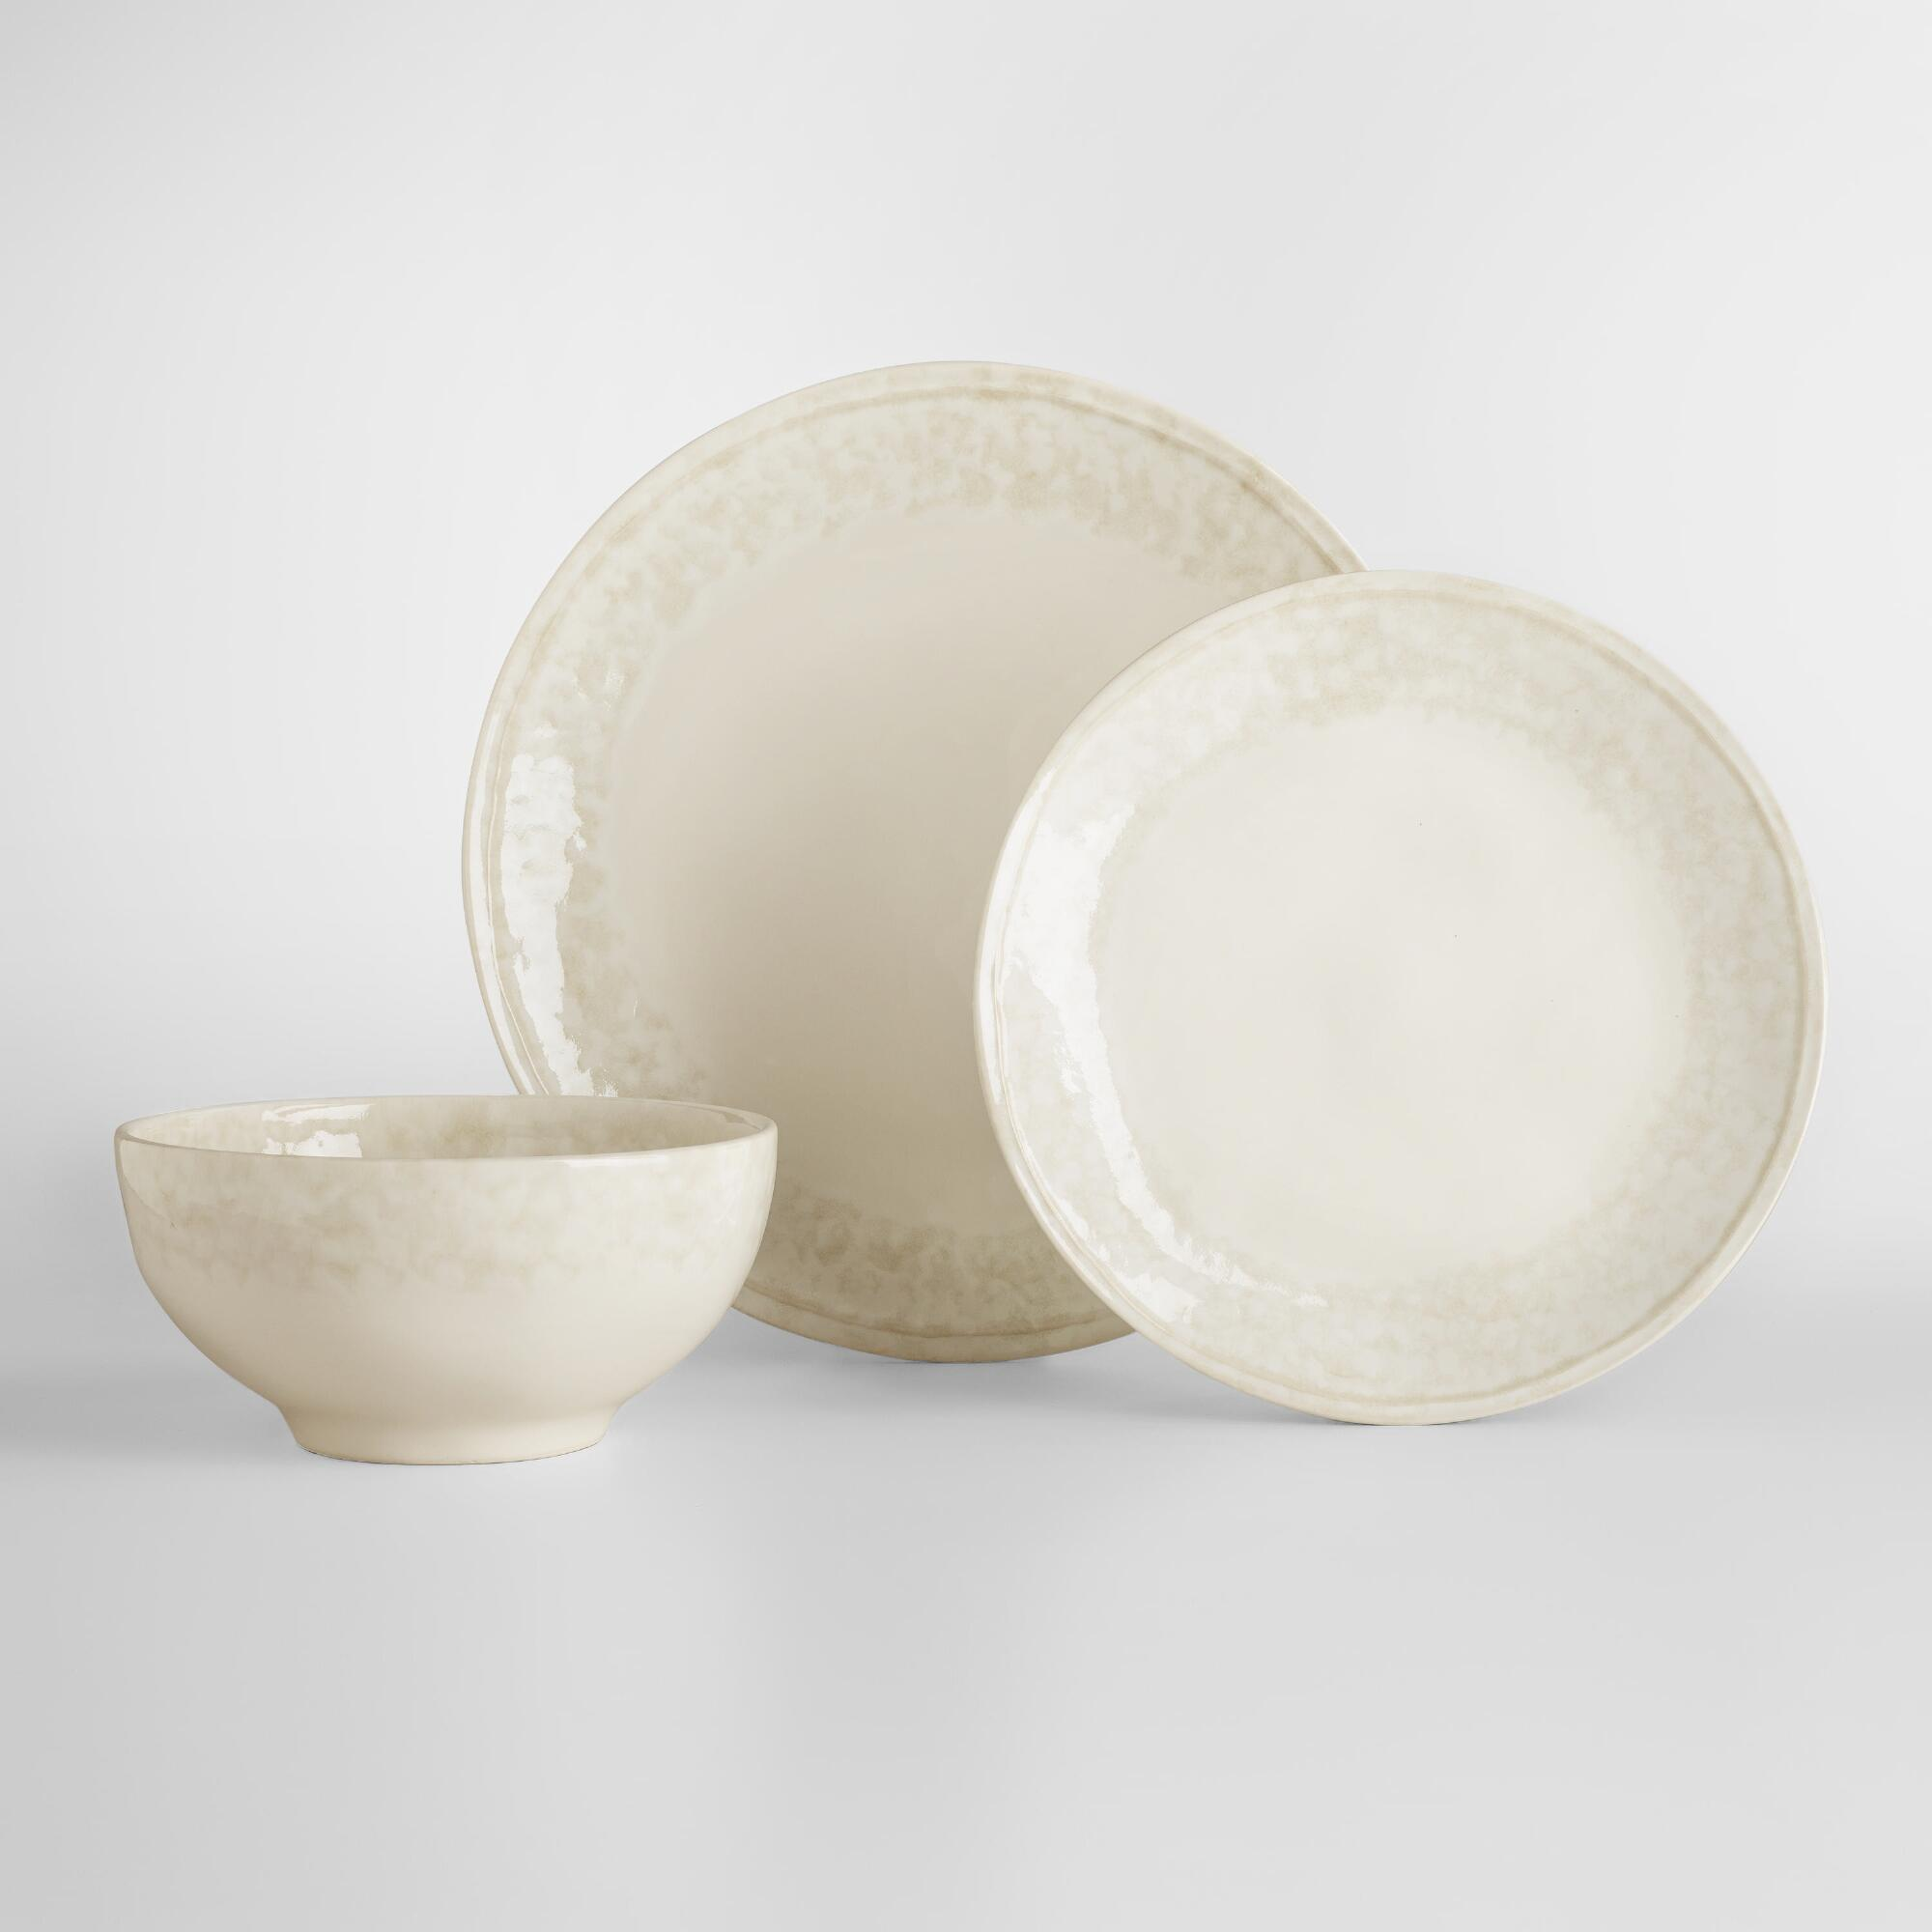 Reactive Glaze Muir Dinnerware Collection by World Market